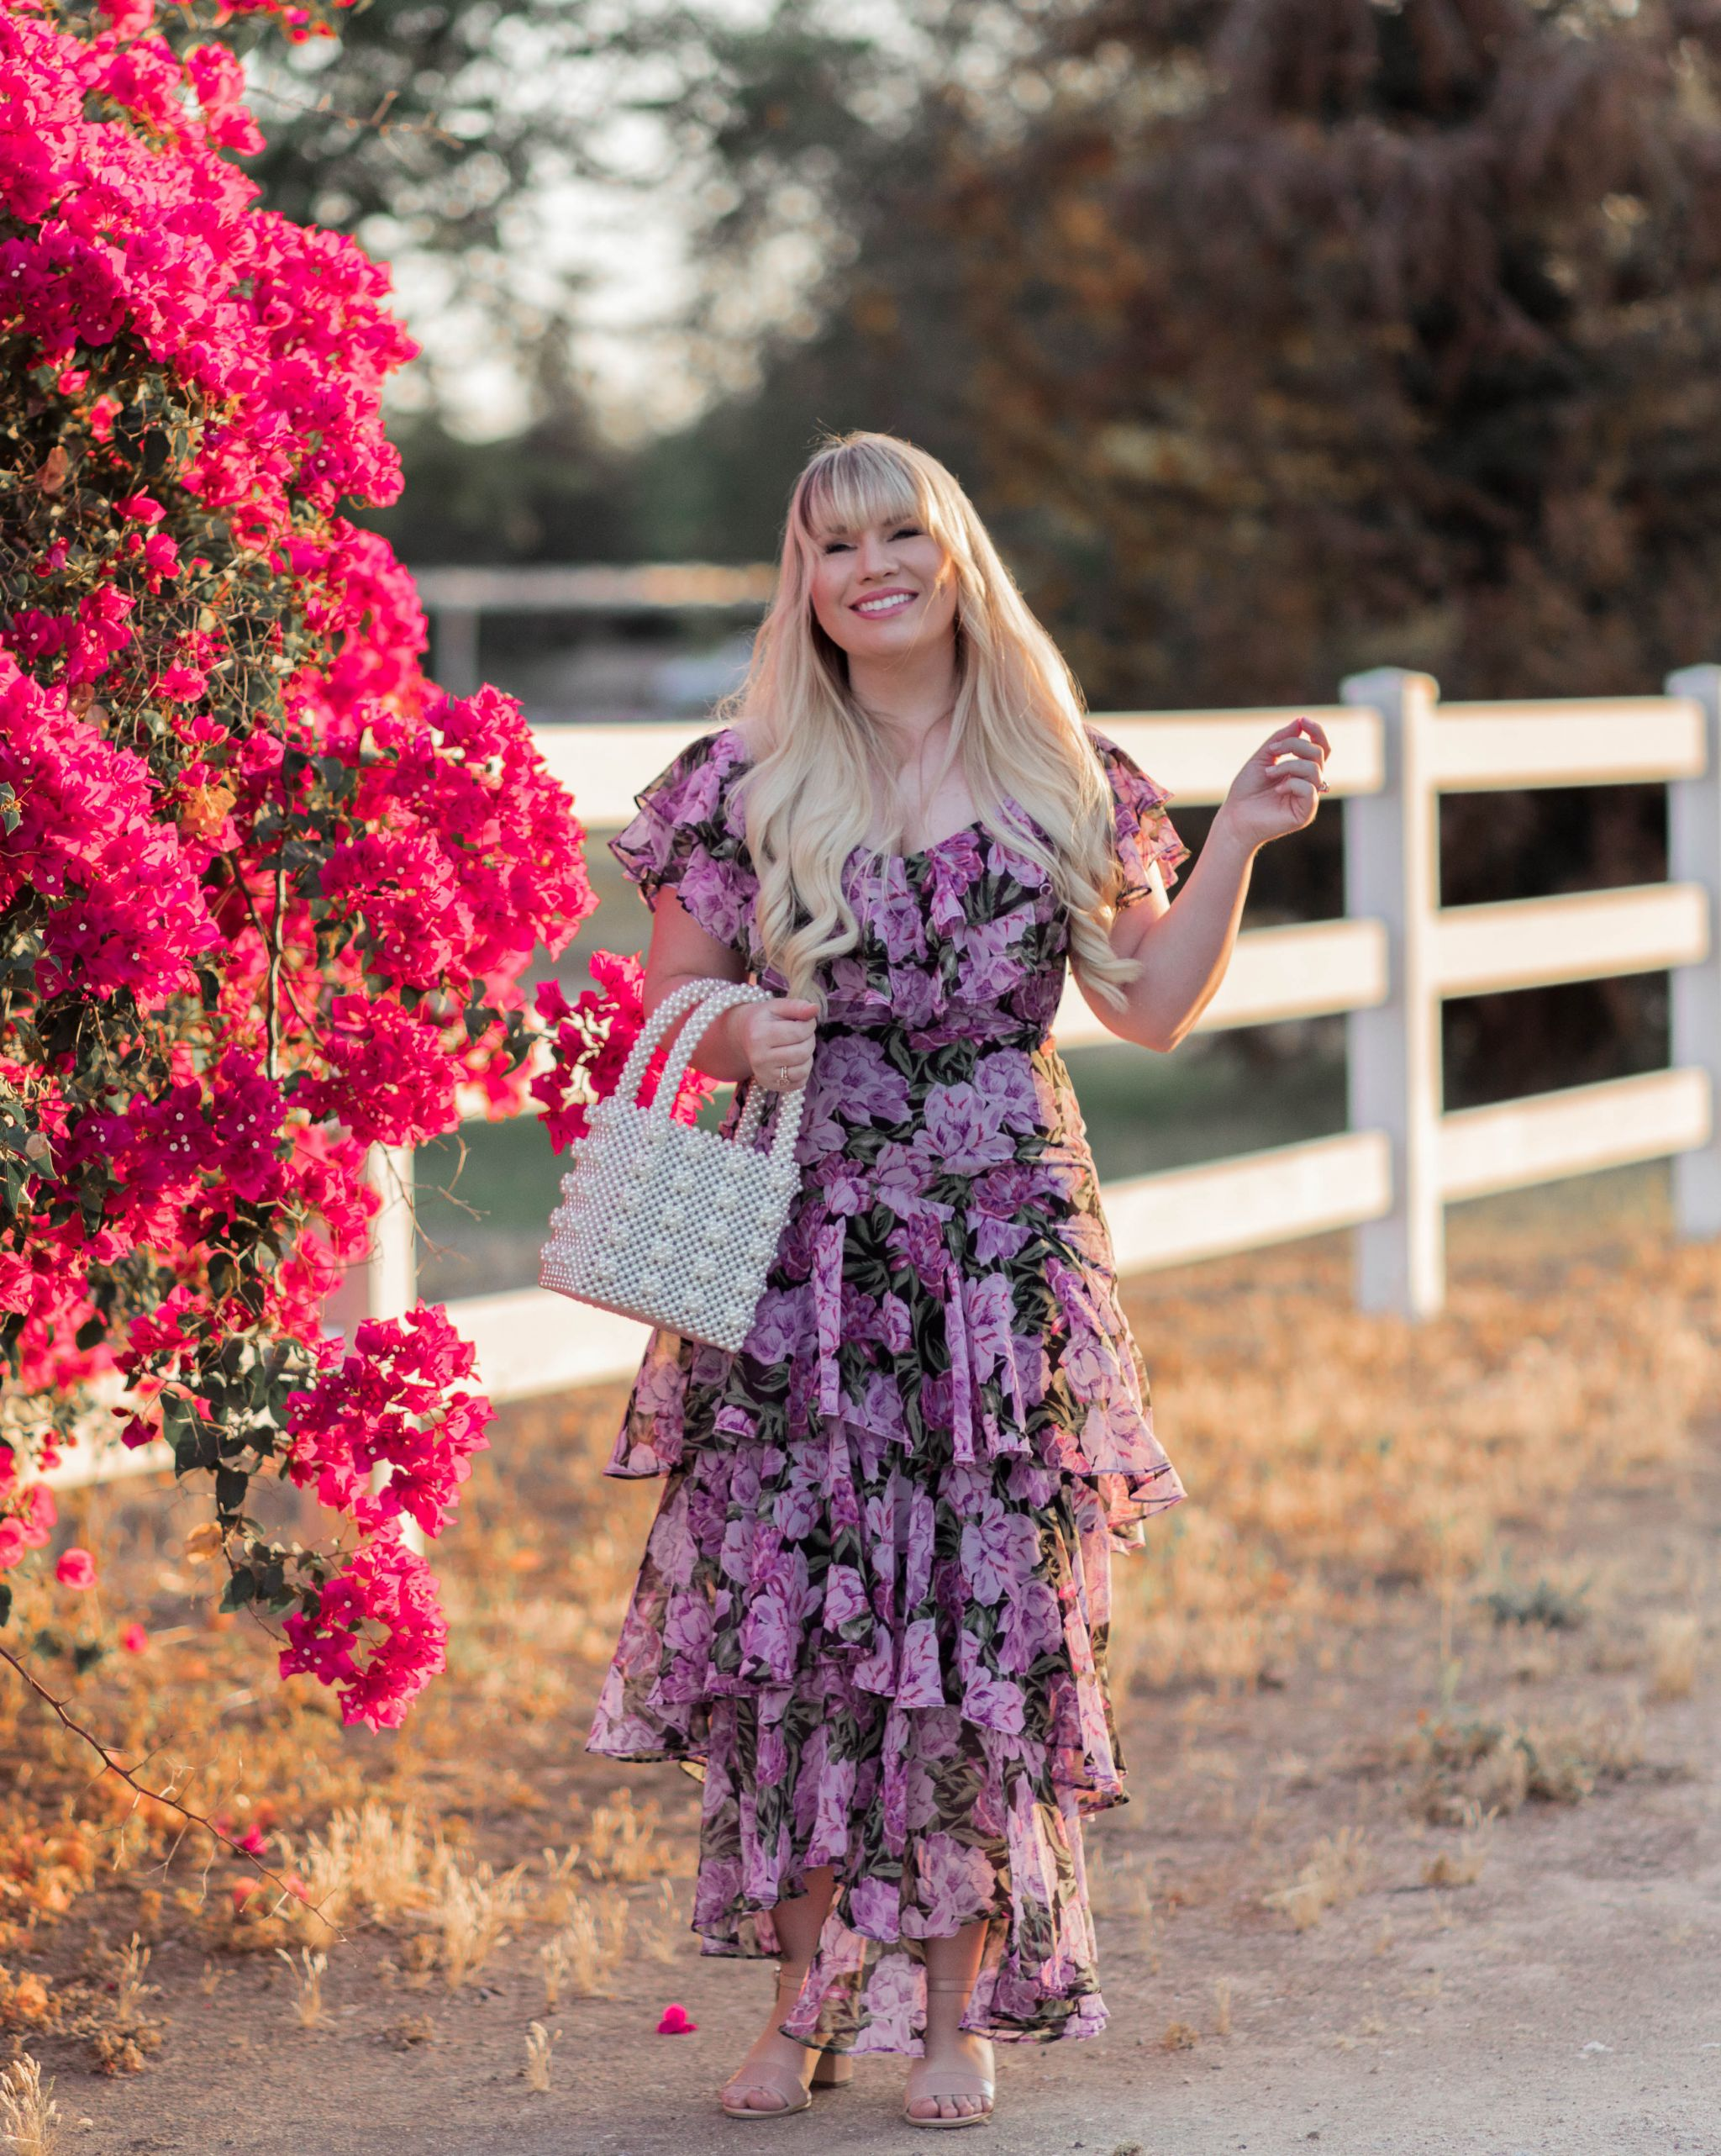 Elizabeth Hugen from Lizzie in Lace wears a purple floral summer dress